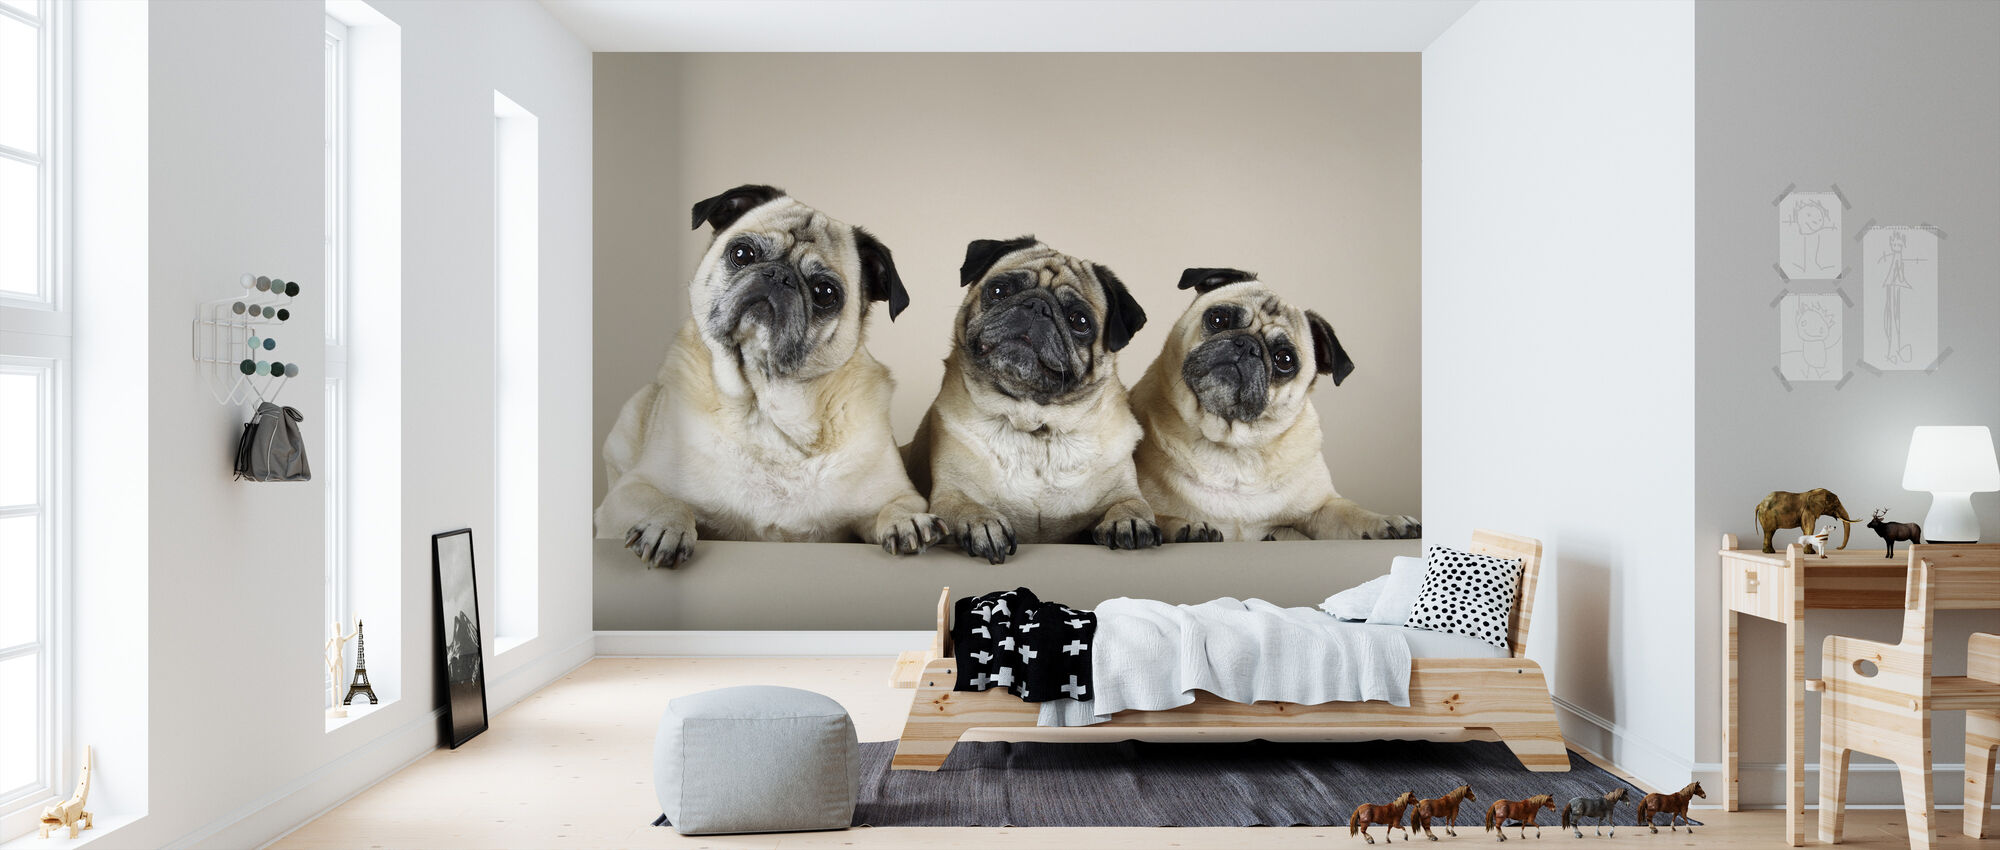 Trio - Wallpaper - Kids Room